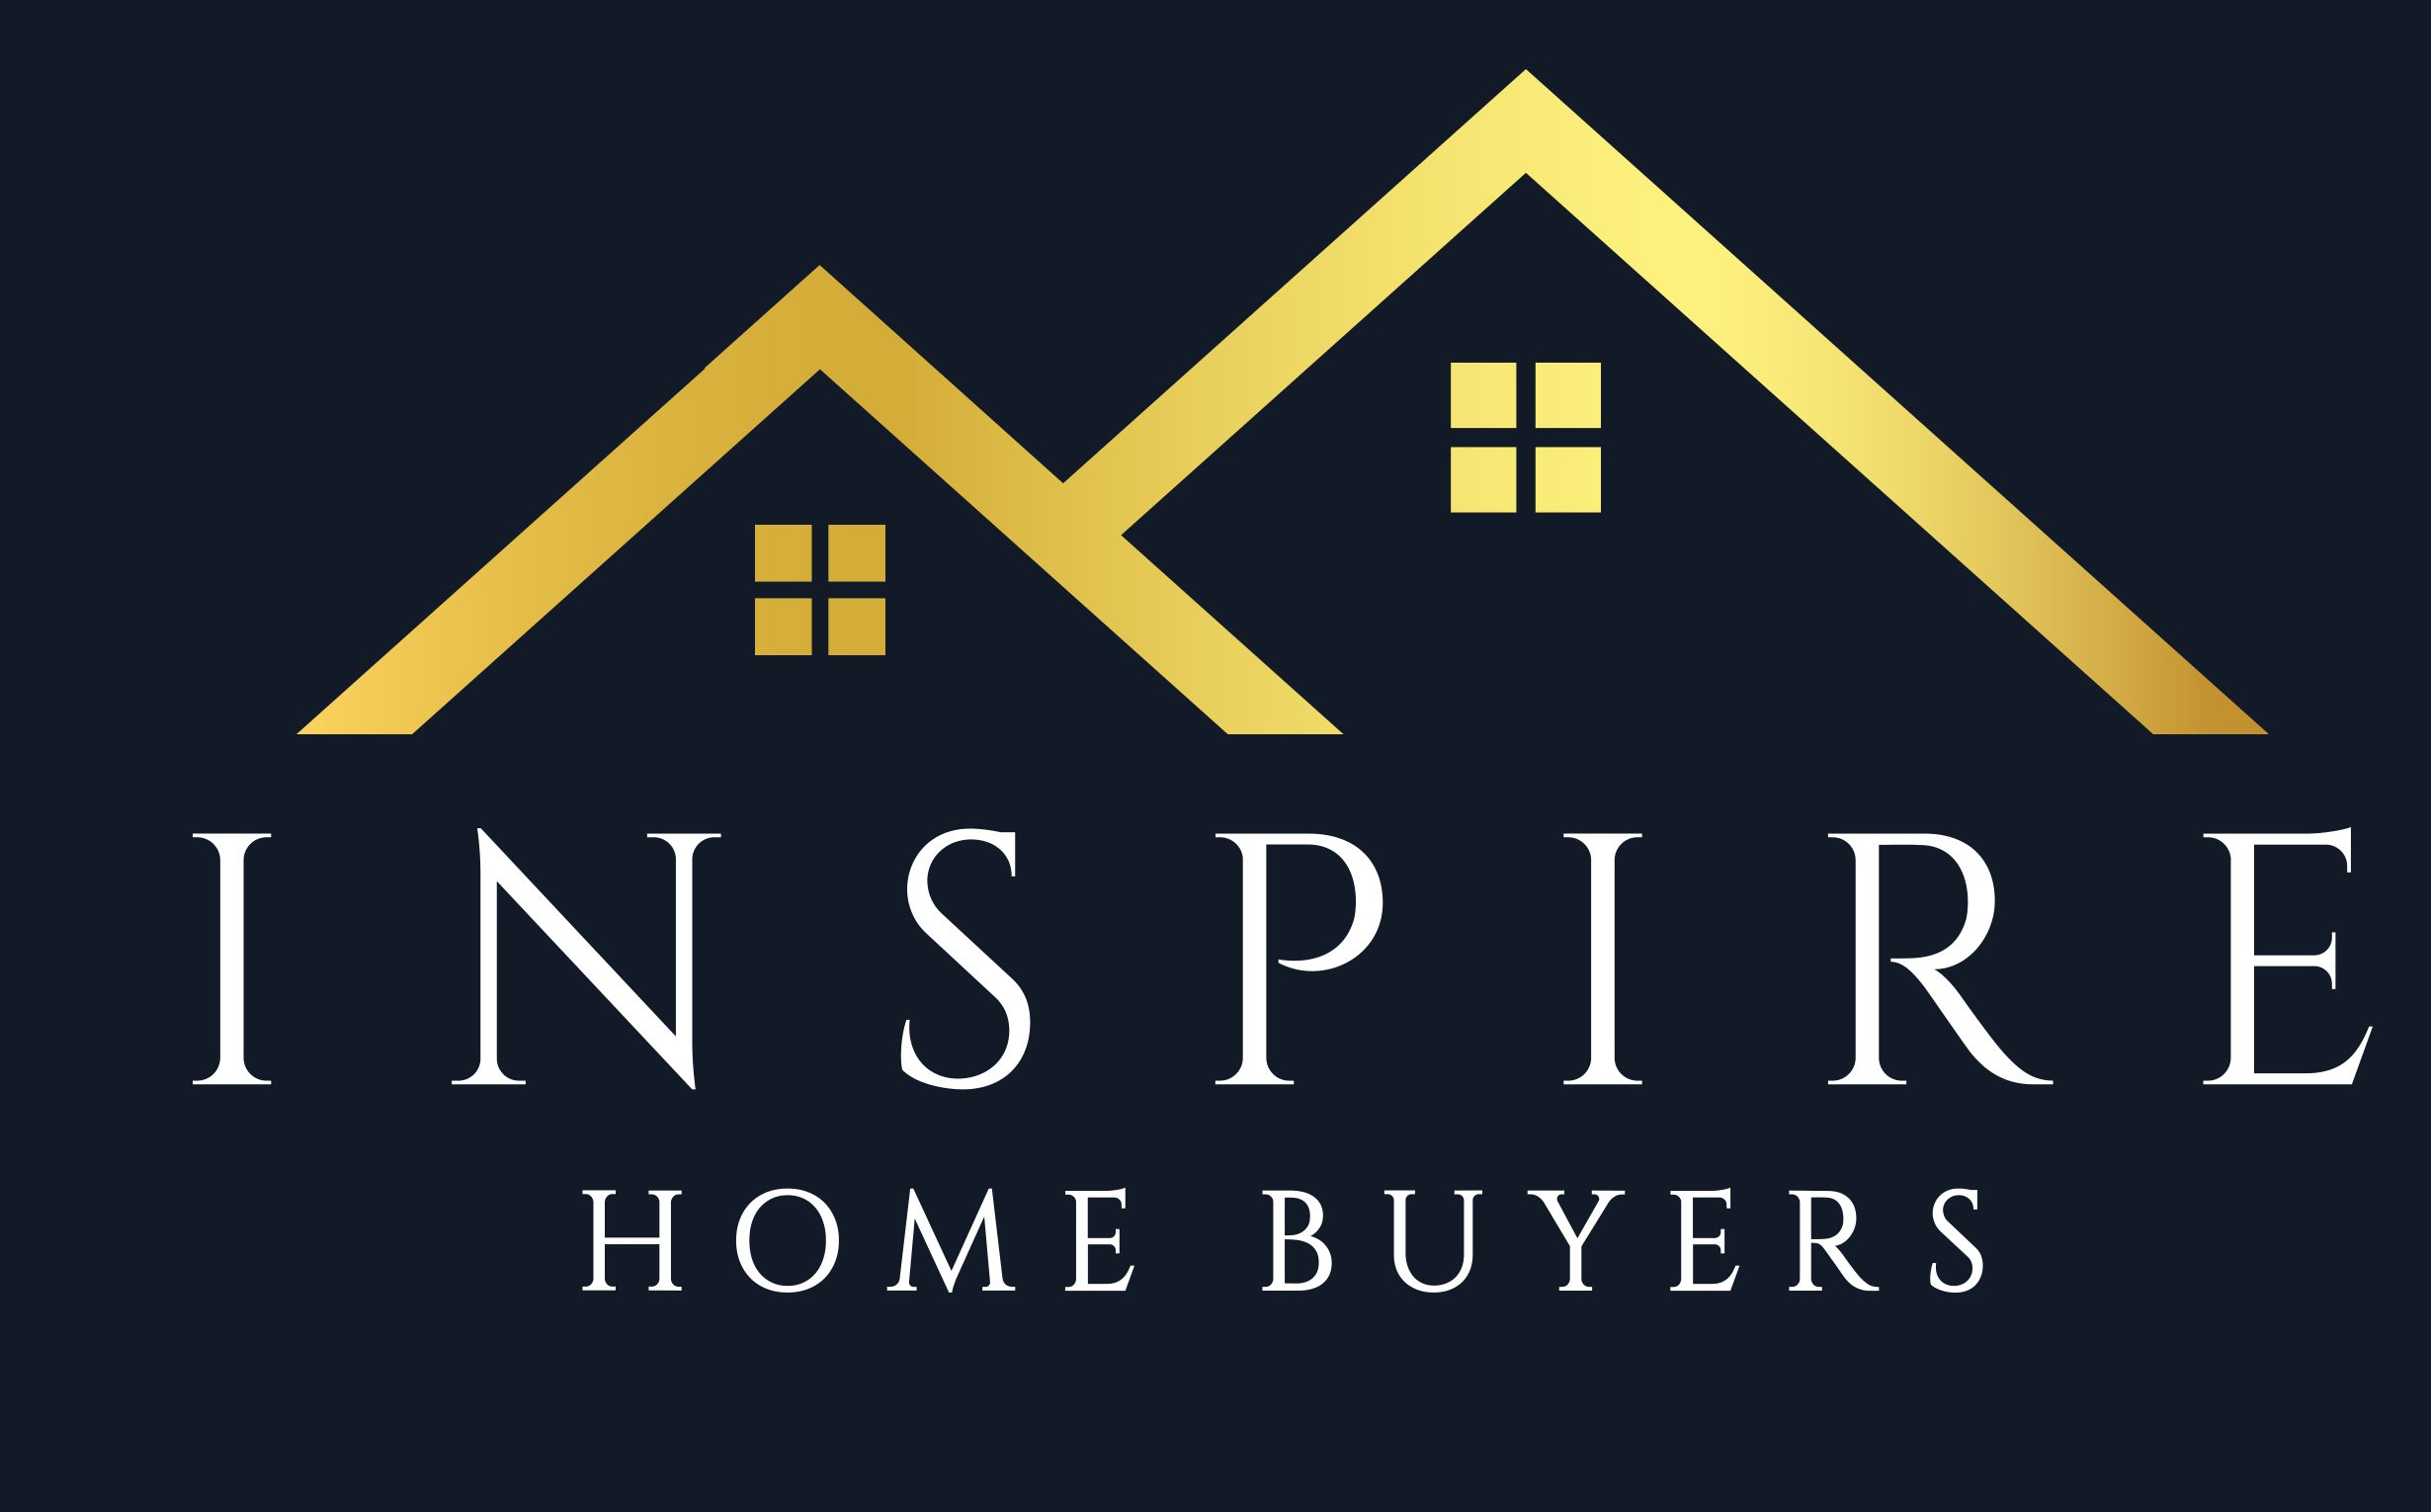 Inspire Home Buyers